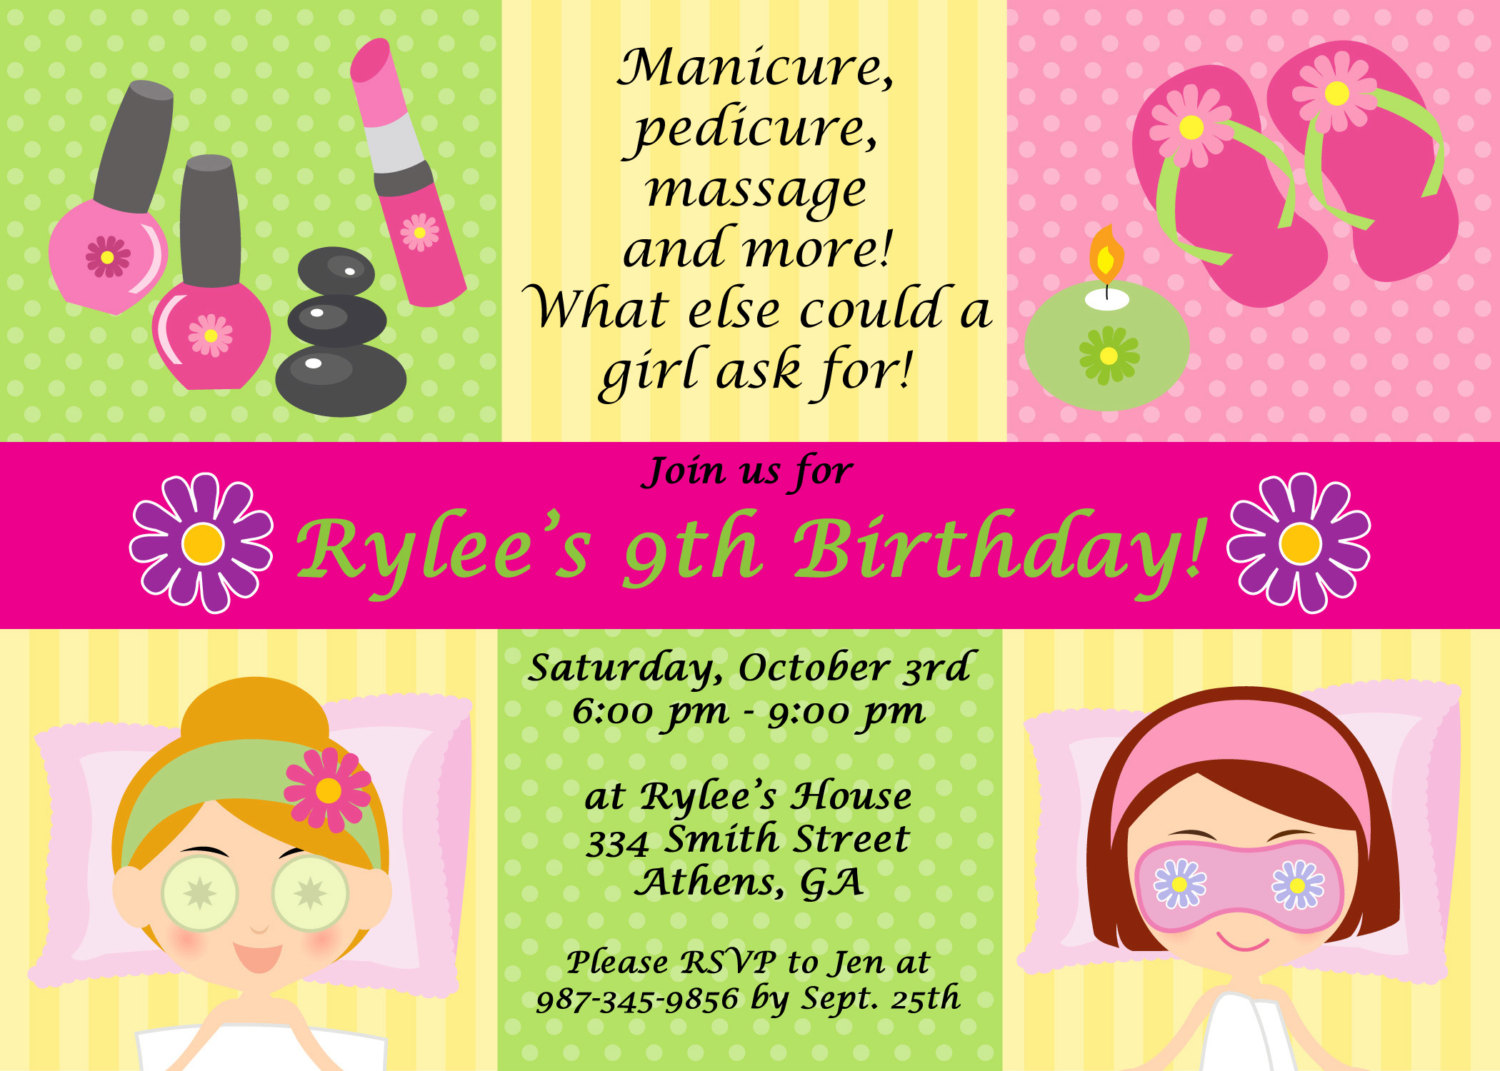 7 Best Images of Spa Party Invitation Printable - Free ...